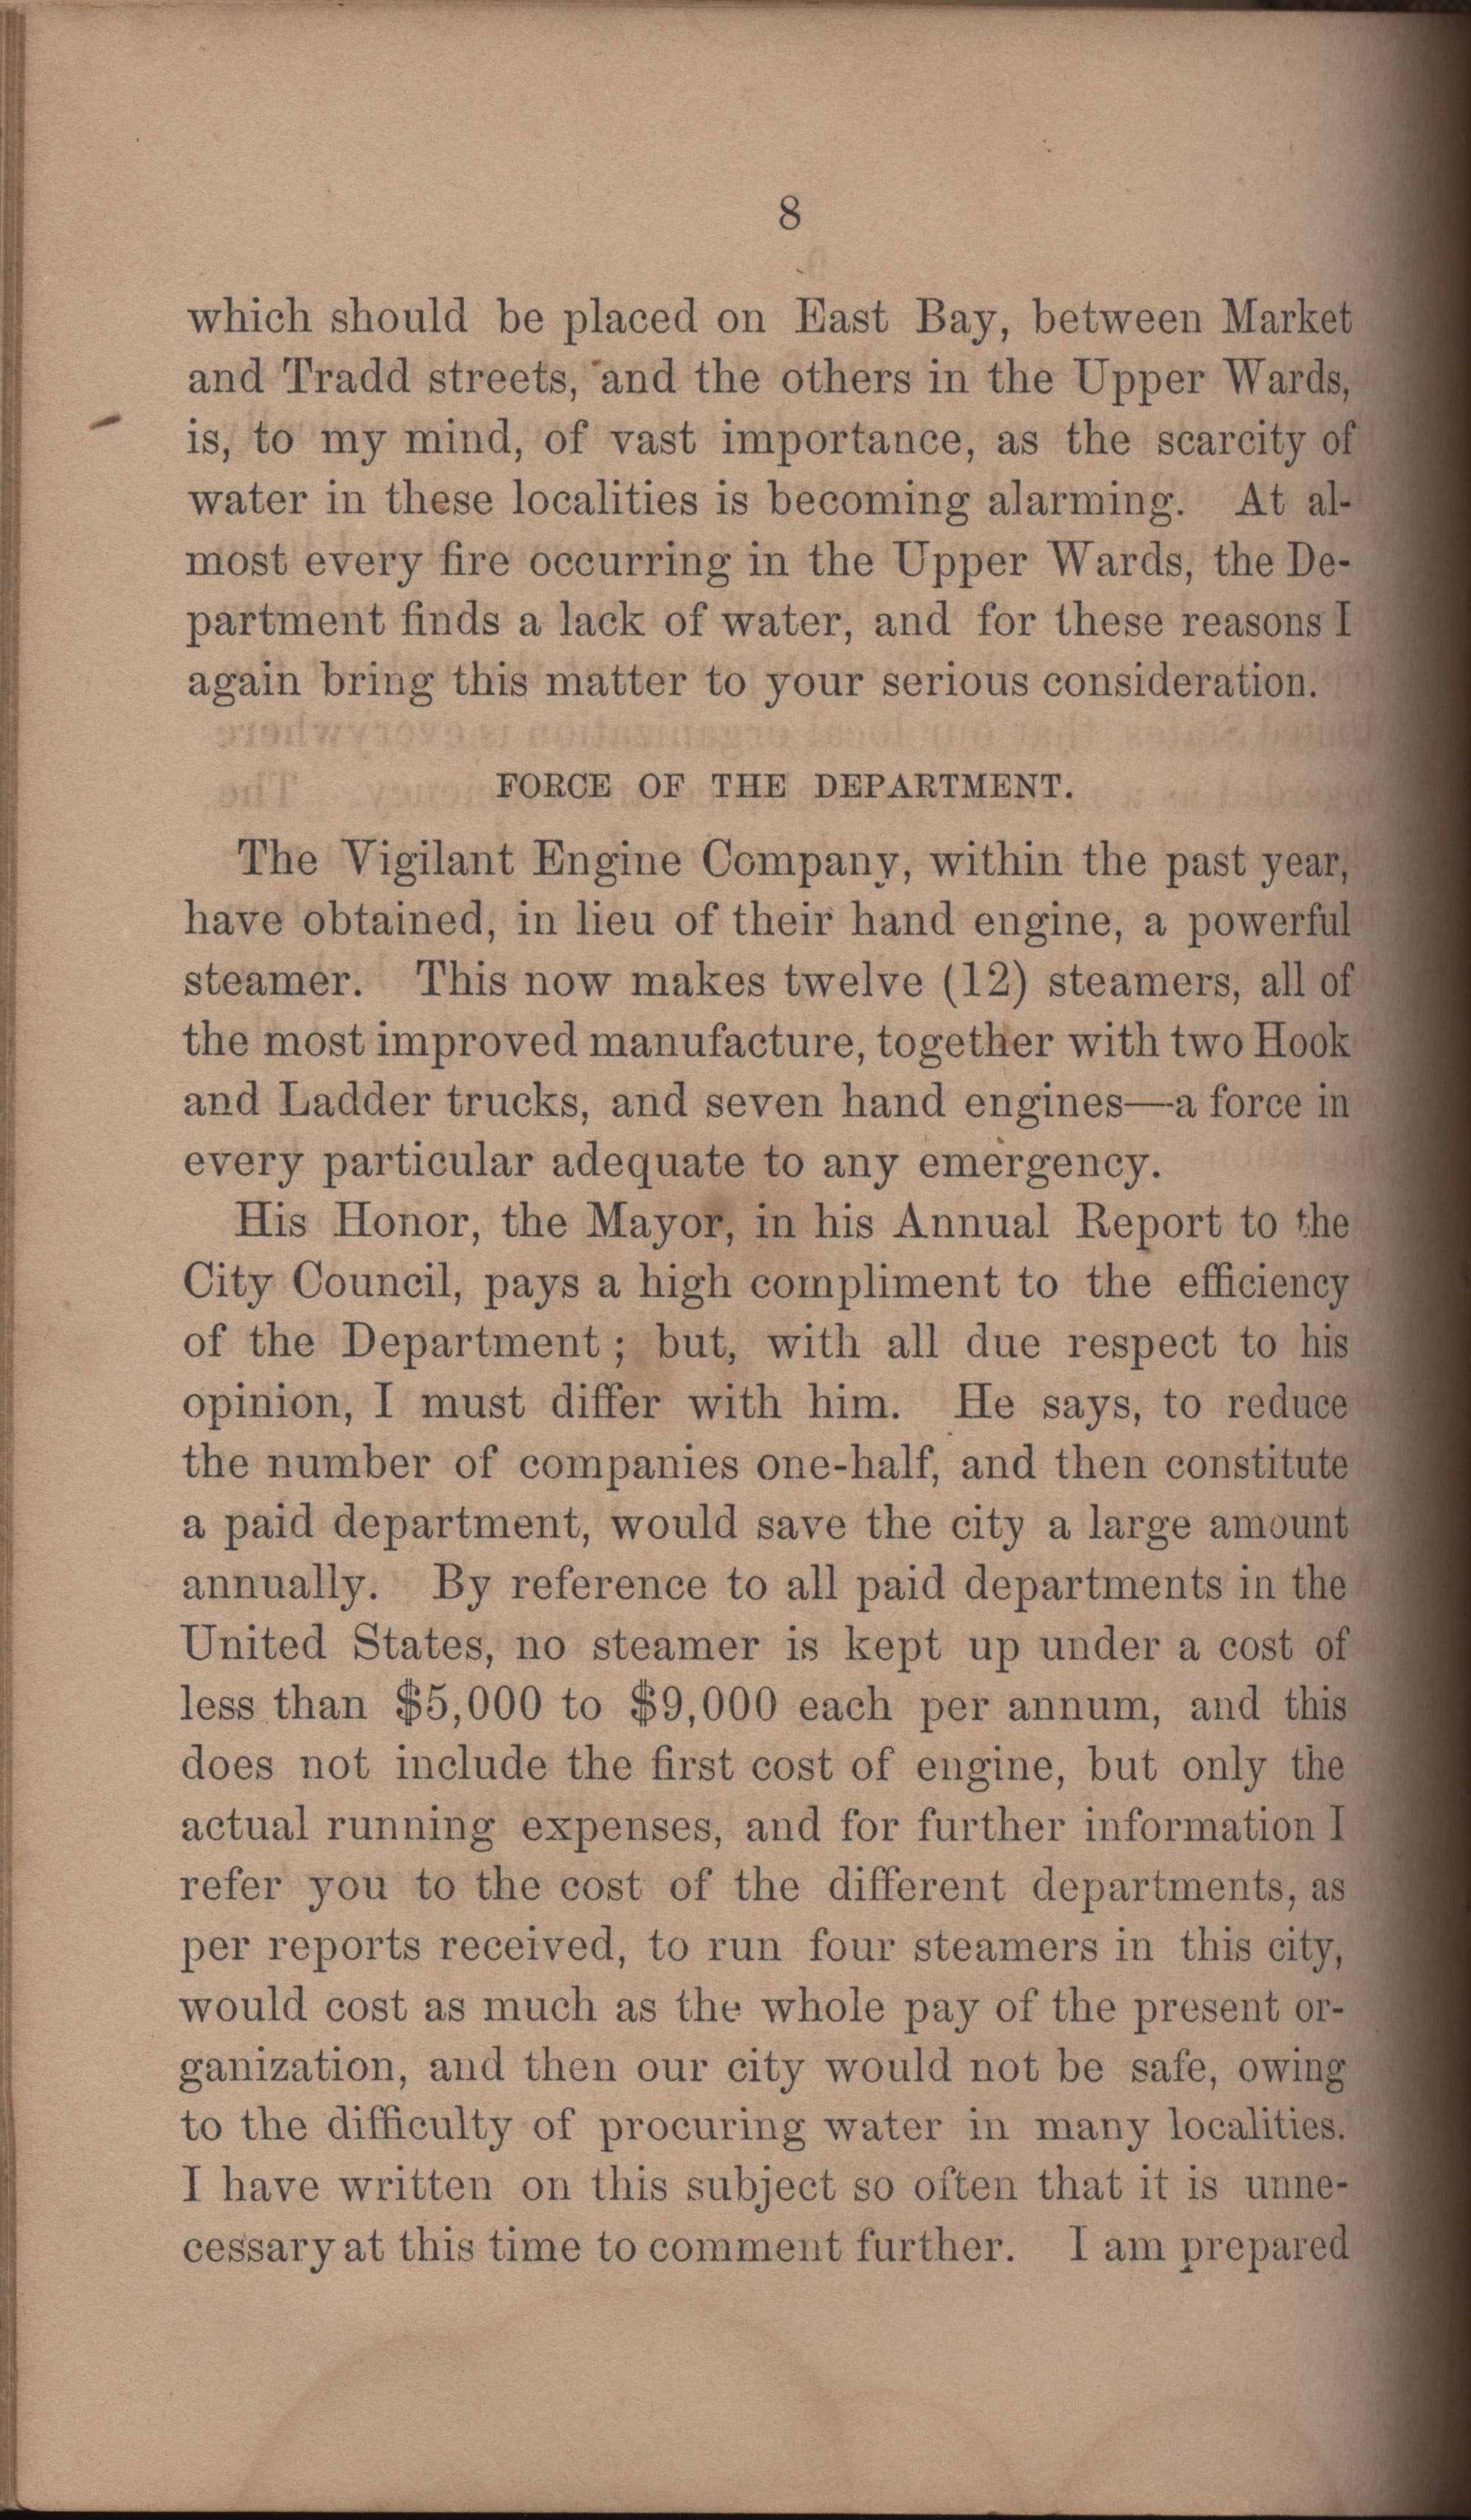 Annual Report of the Chief of the Fire Department of the City of Charleston, page 355